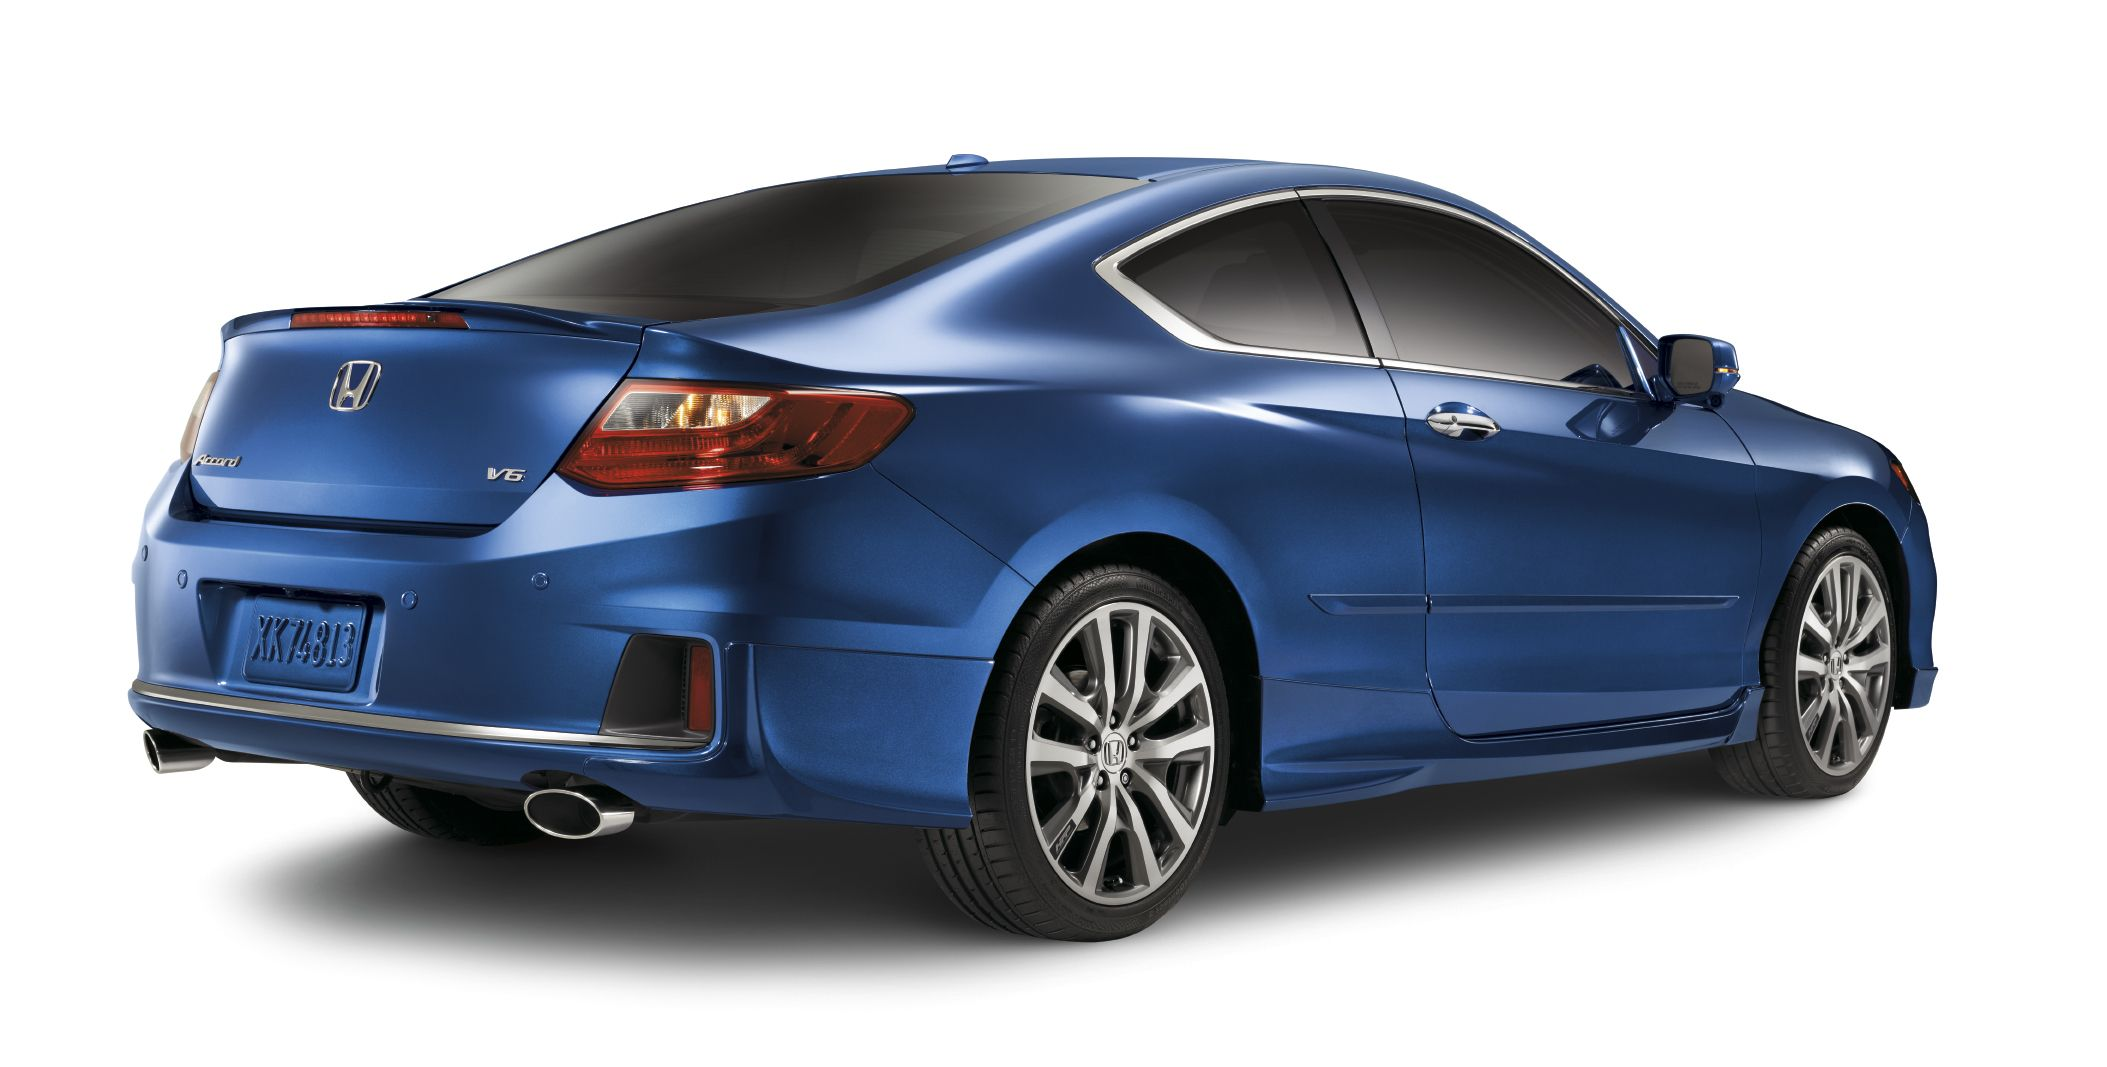 2013 Honda Accord Coupe Accessories Honda accord coupe